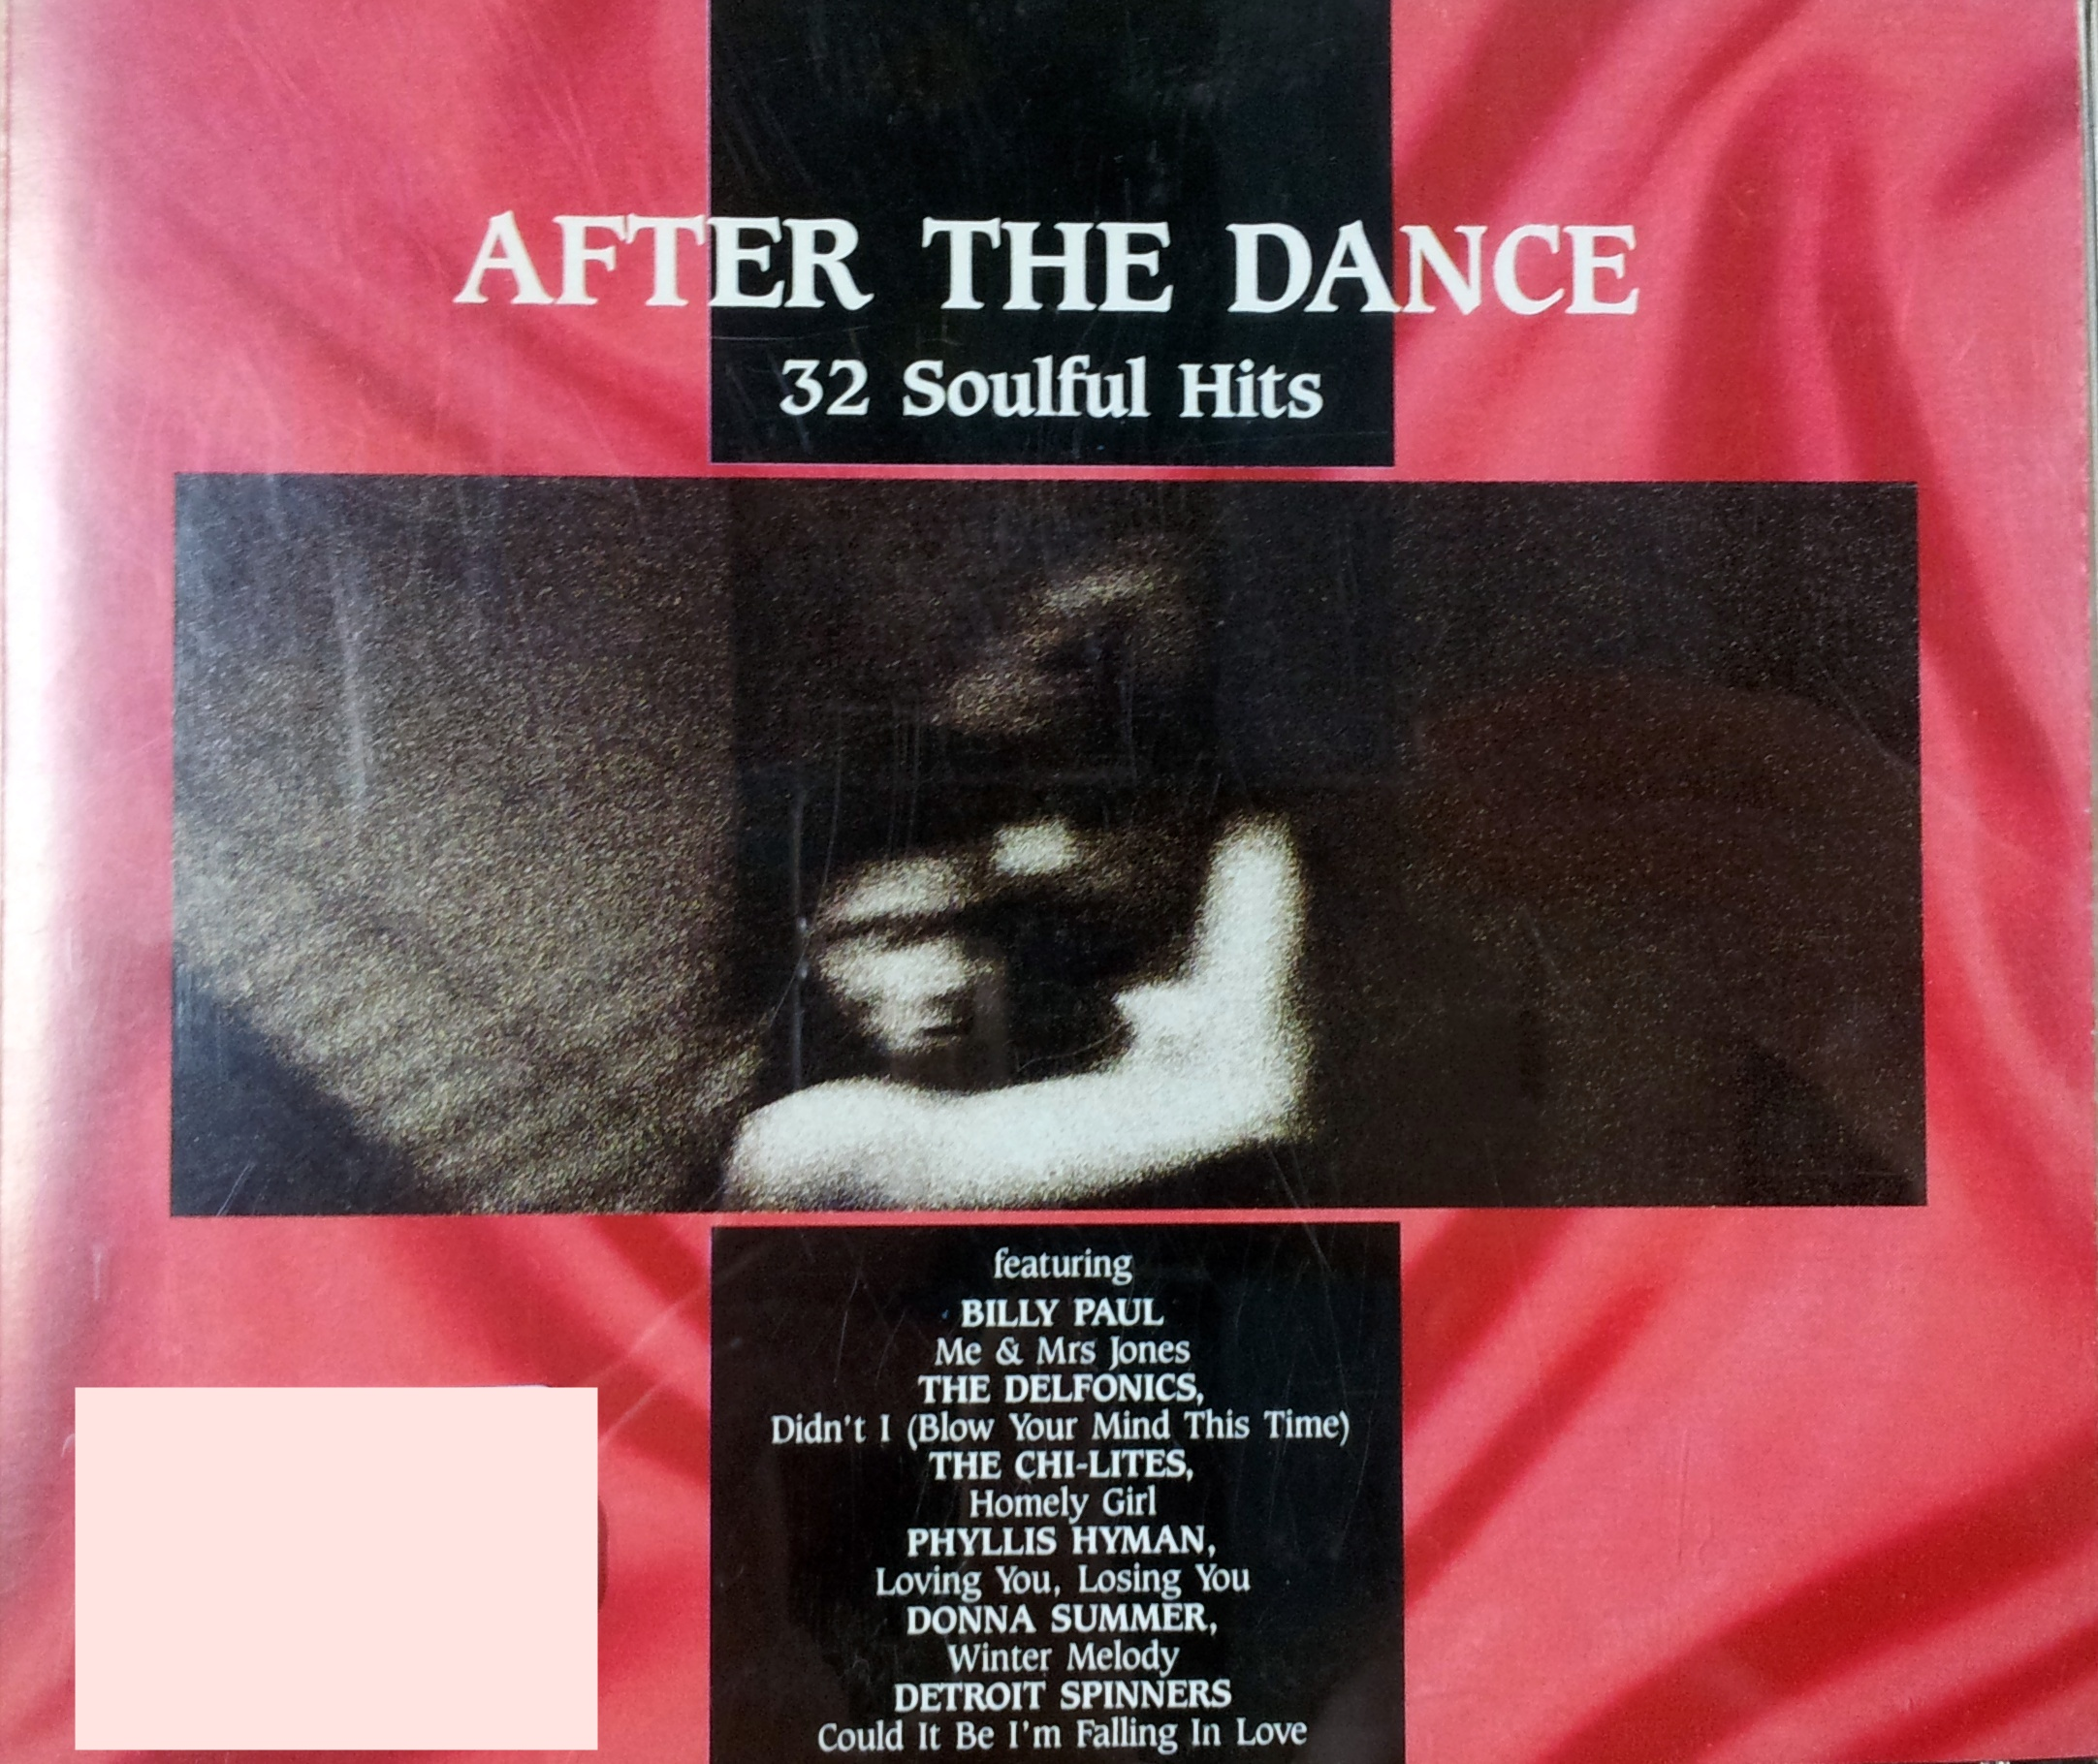 After the dance - 32 Soulful hits